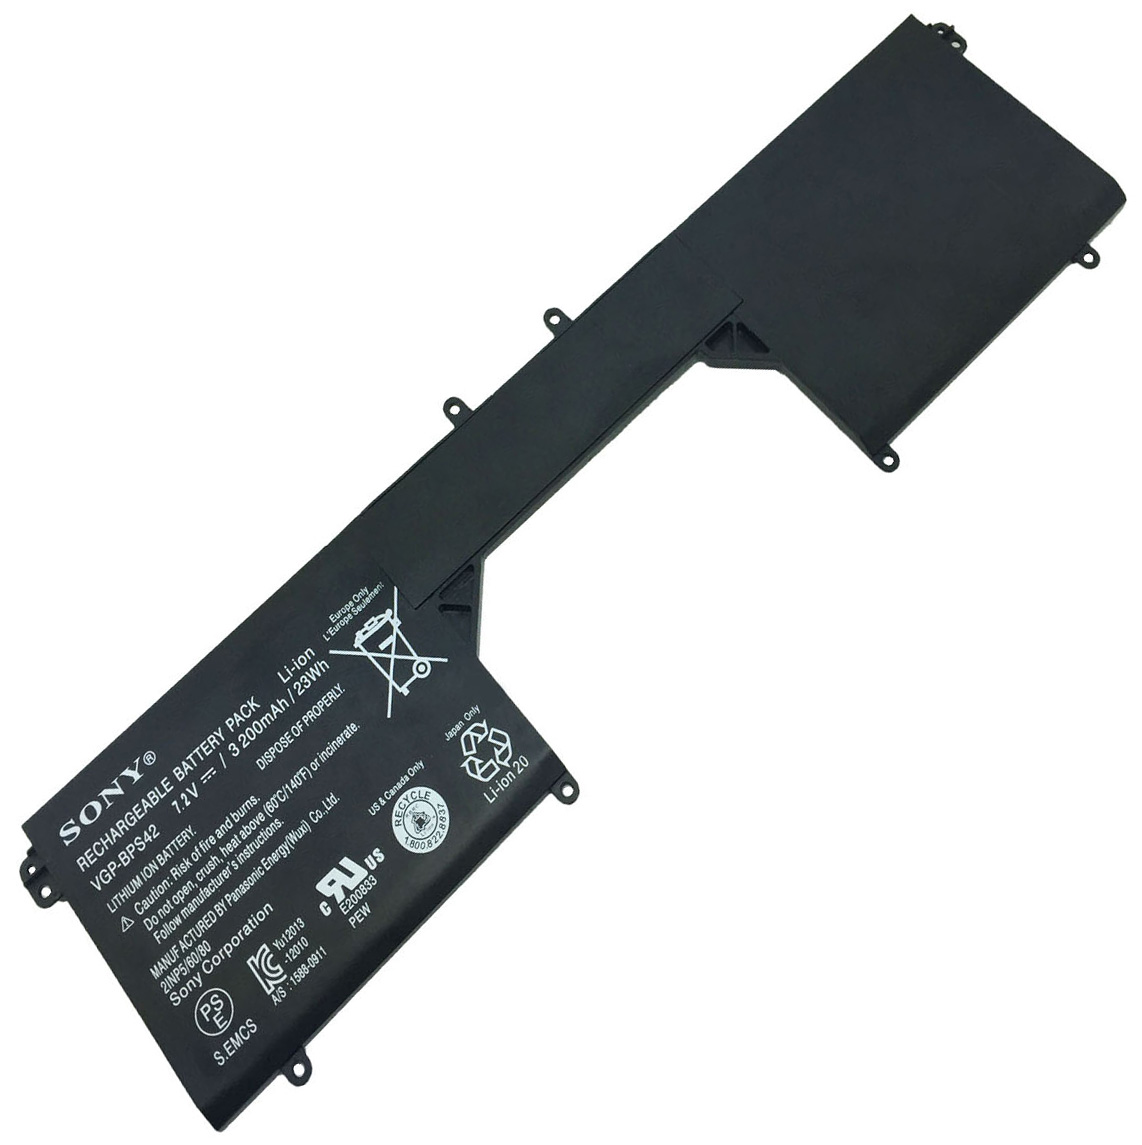 Batterie pour Sony vaio Fit 11A